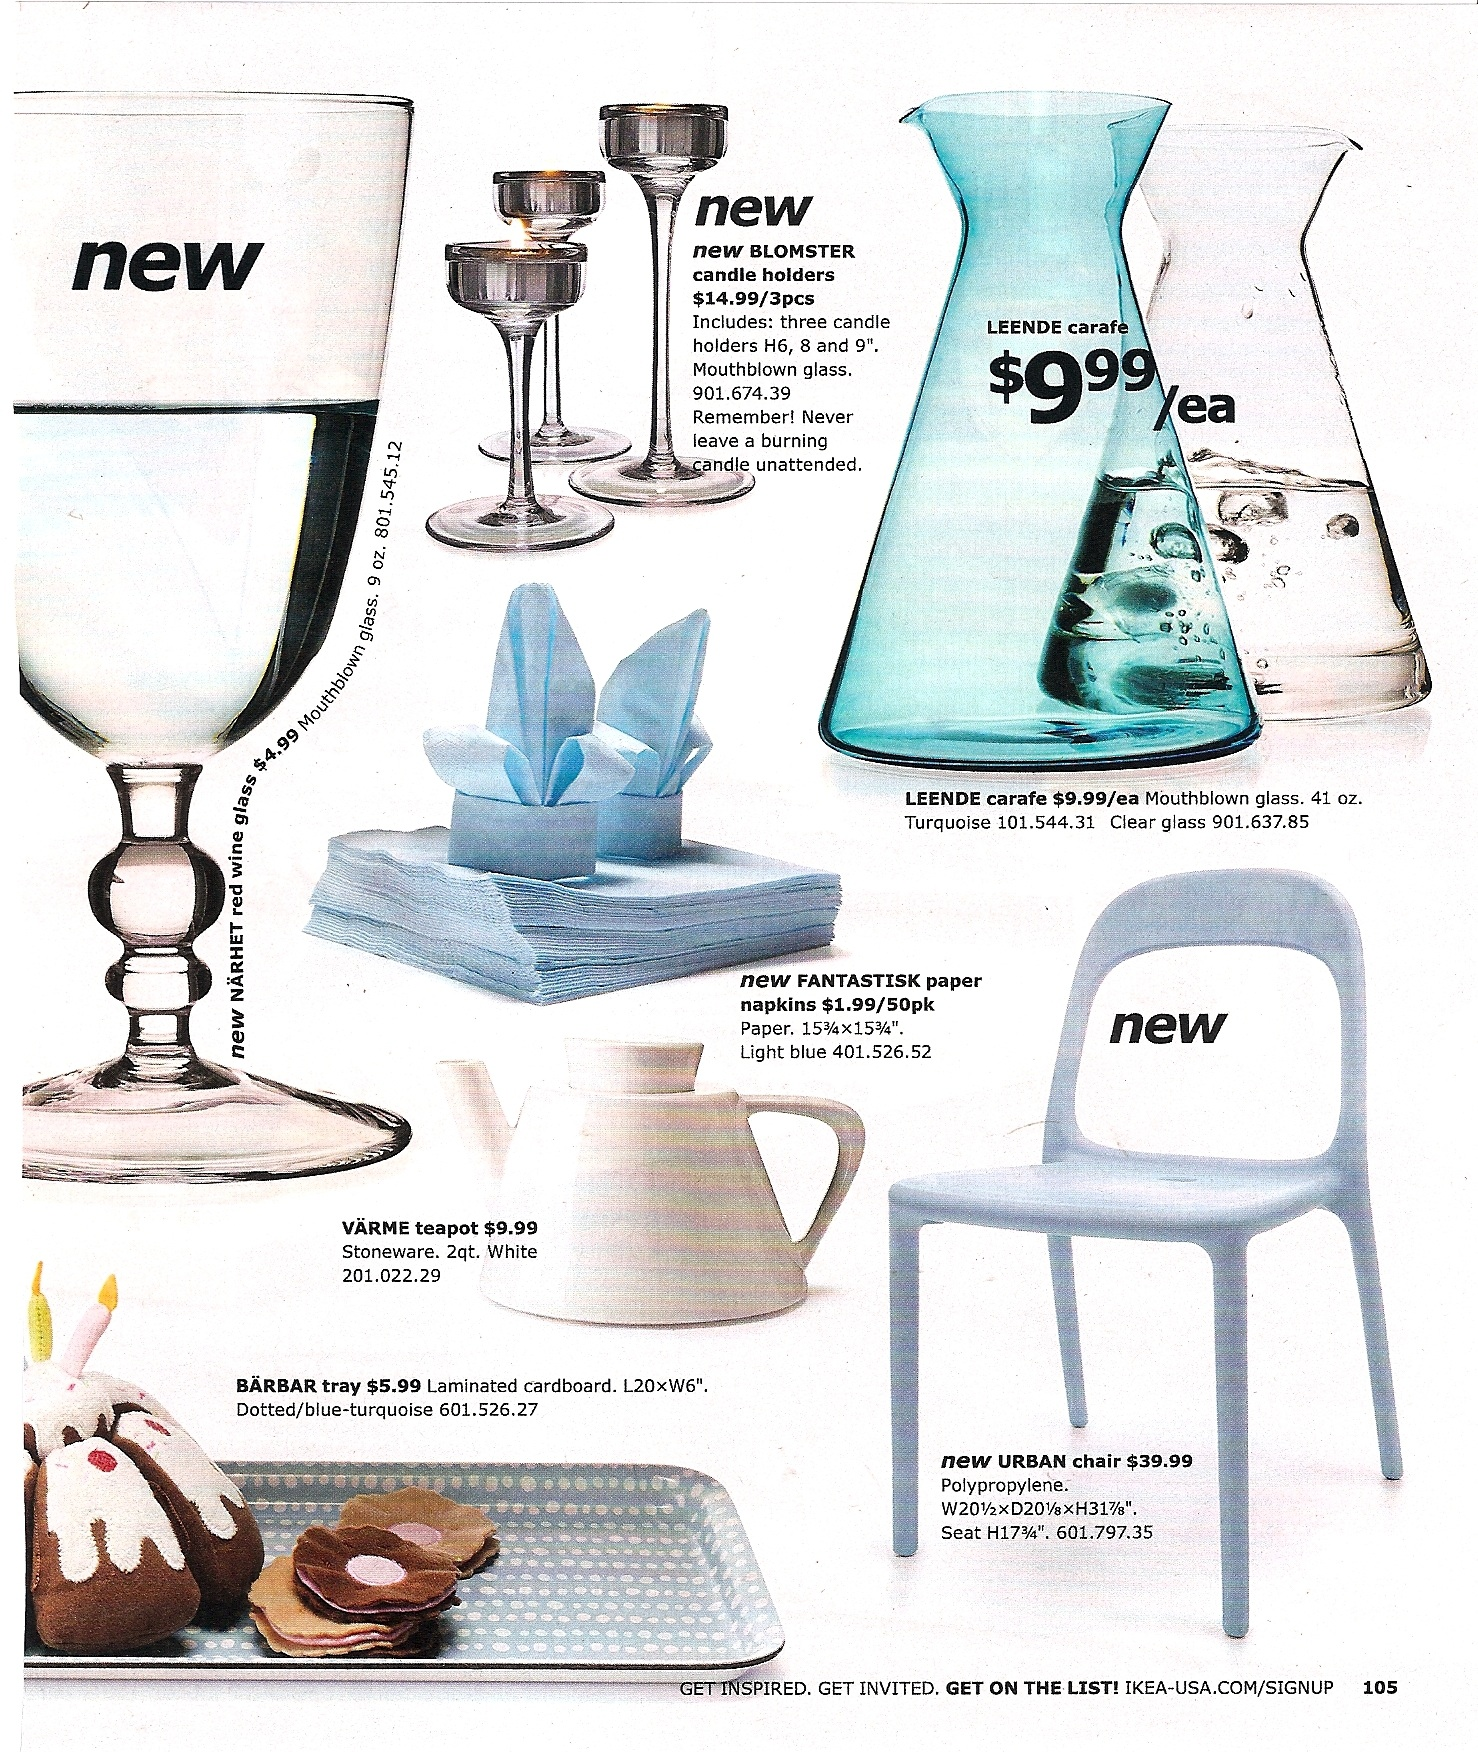 Mouthblown glass accessories and an adorable blue dotted laminated cardboard are fun new accents for the home.